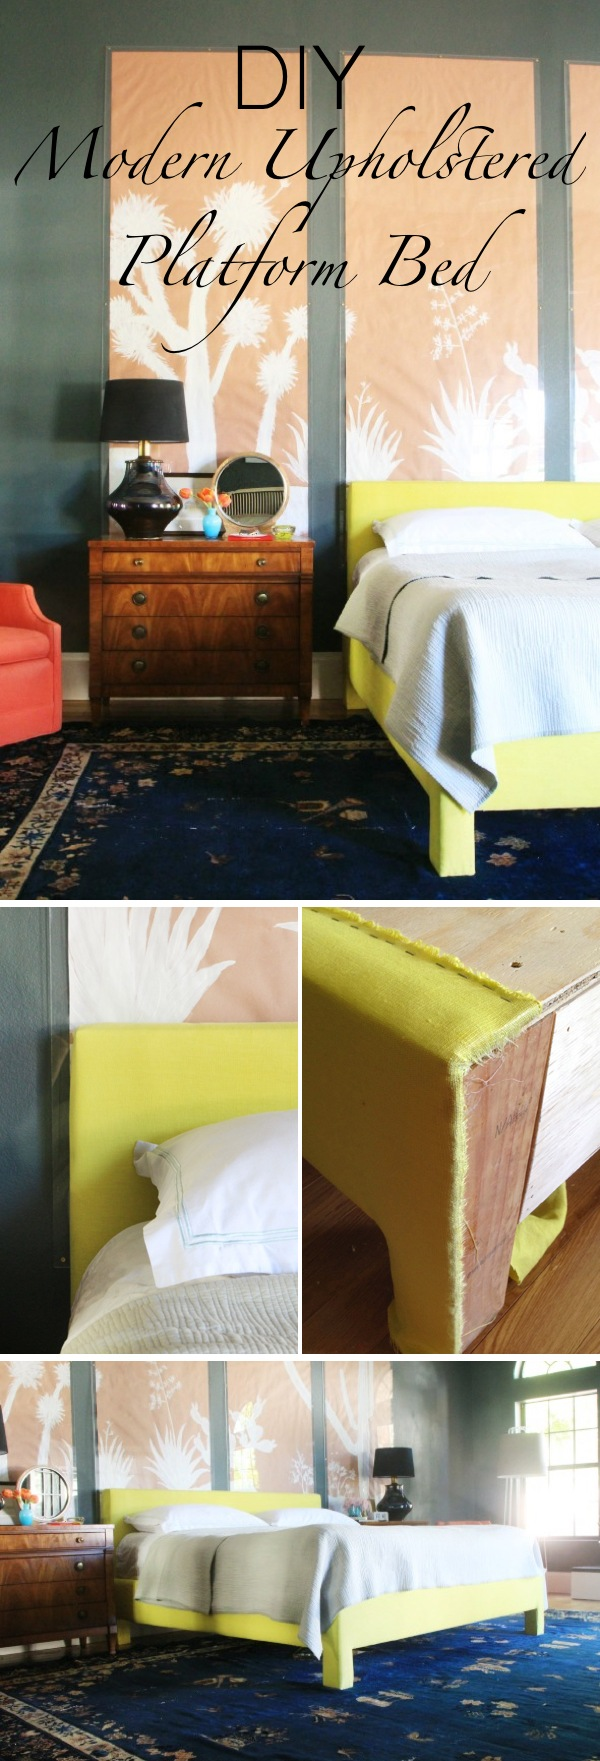 DIY Modern Upholstered Platform Bed